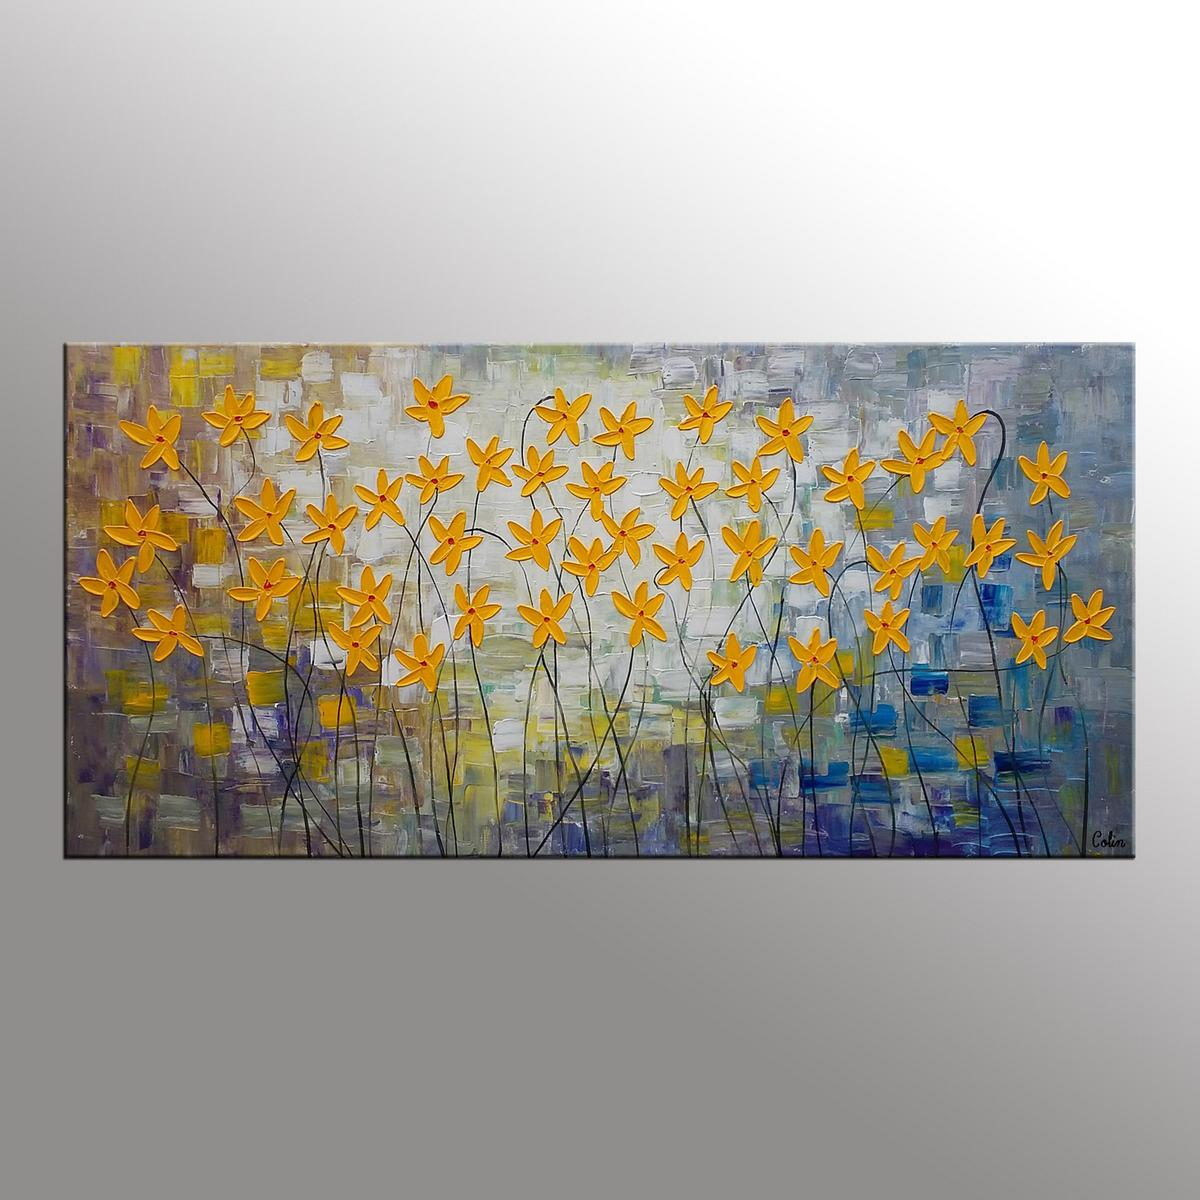 Canvas Art, Flower Painting, Original Wall Art, Bedroom Painting, Large Art, Canvas Art, Wall Art, Canvas Painting, 344